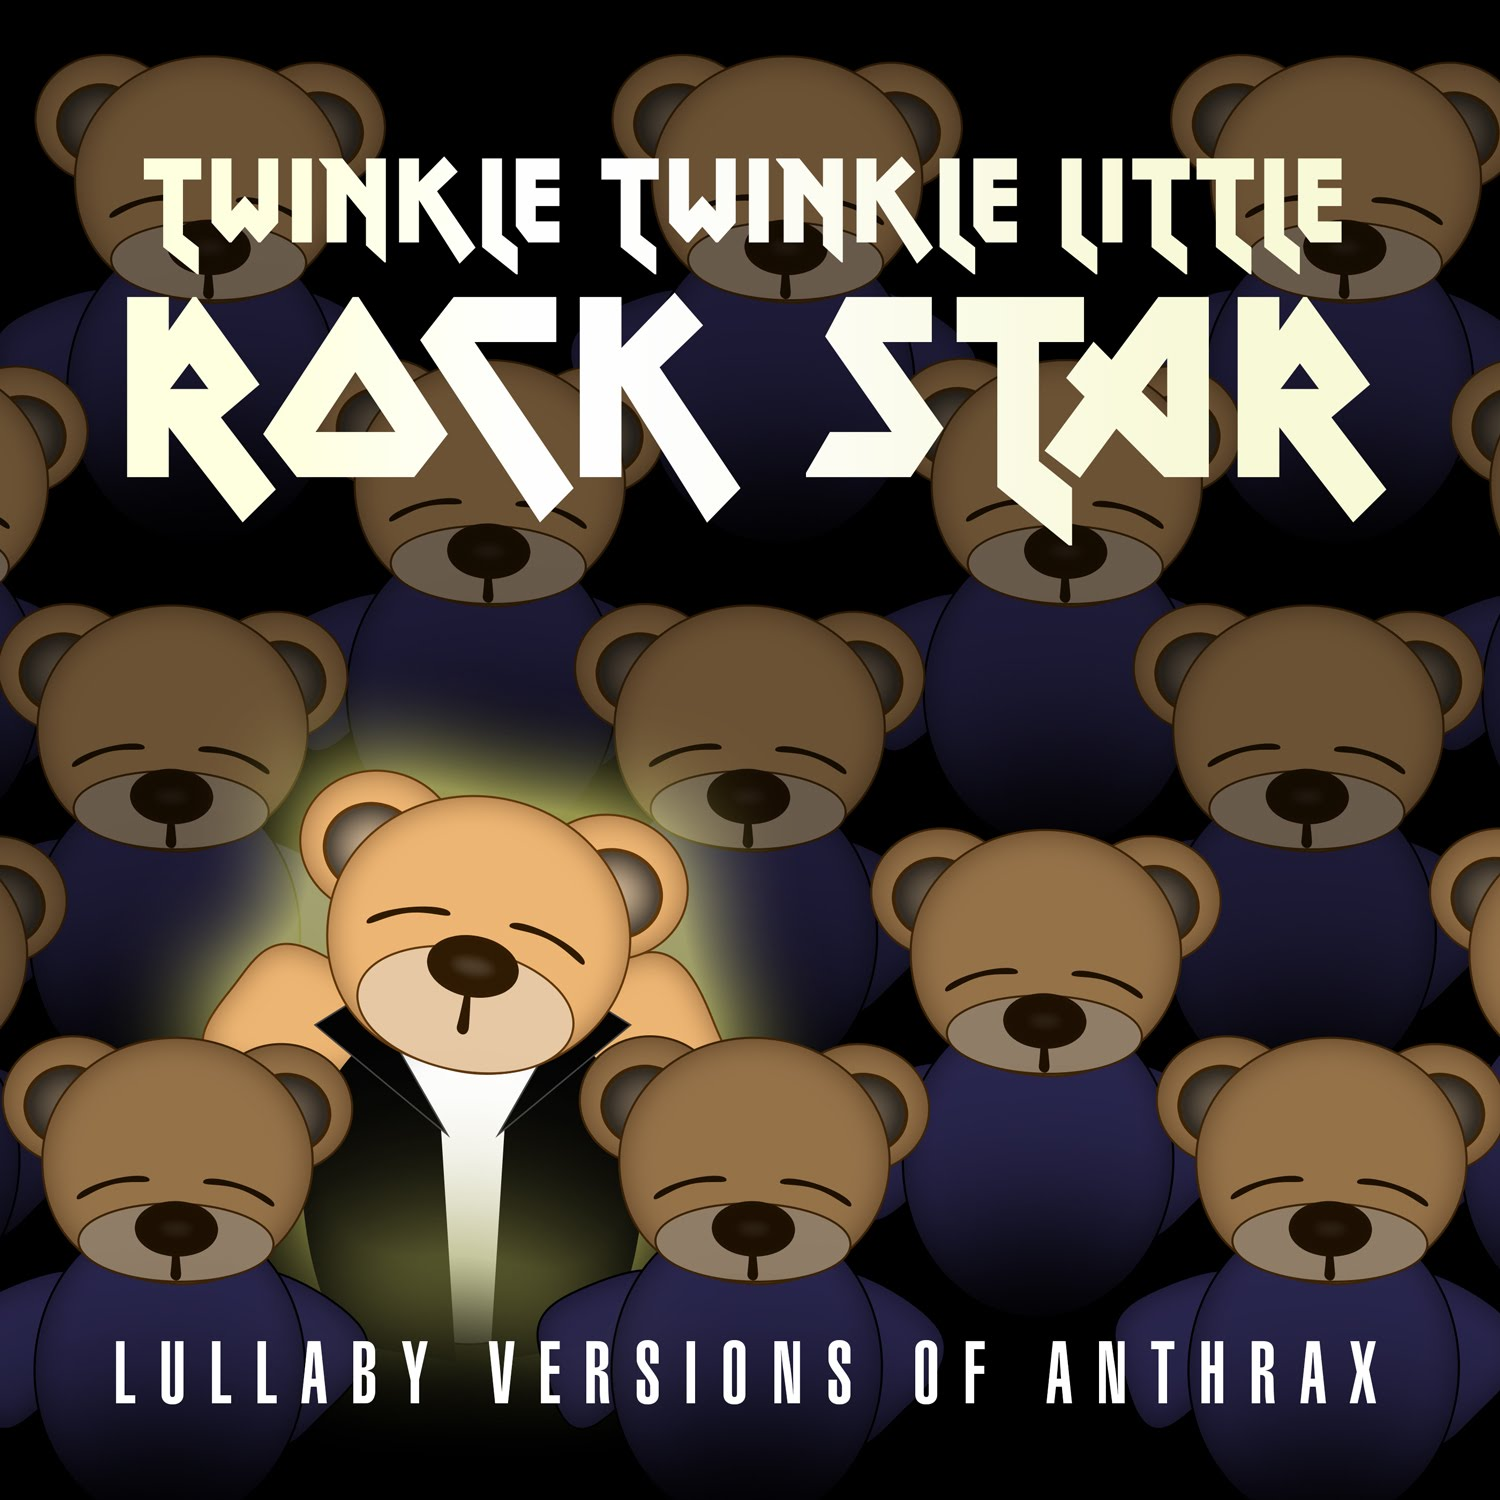 Twinkle Twinkle Little Rock Star releases lullaby versions of Anthrax songs